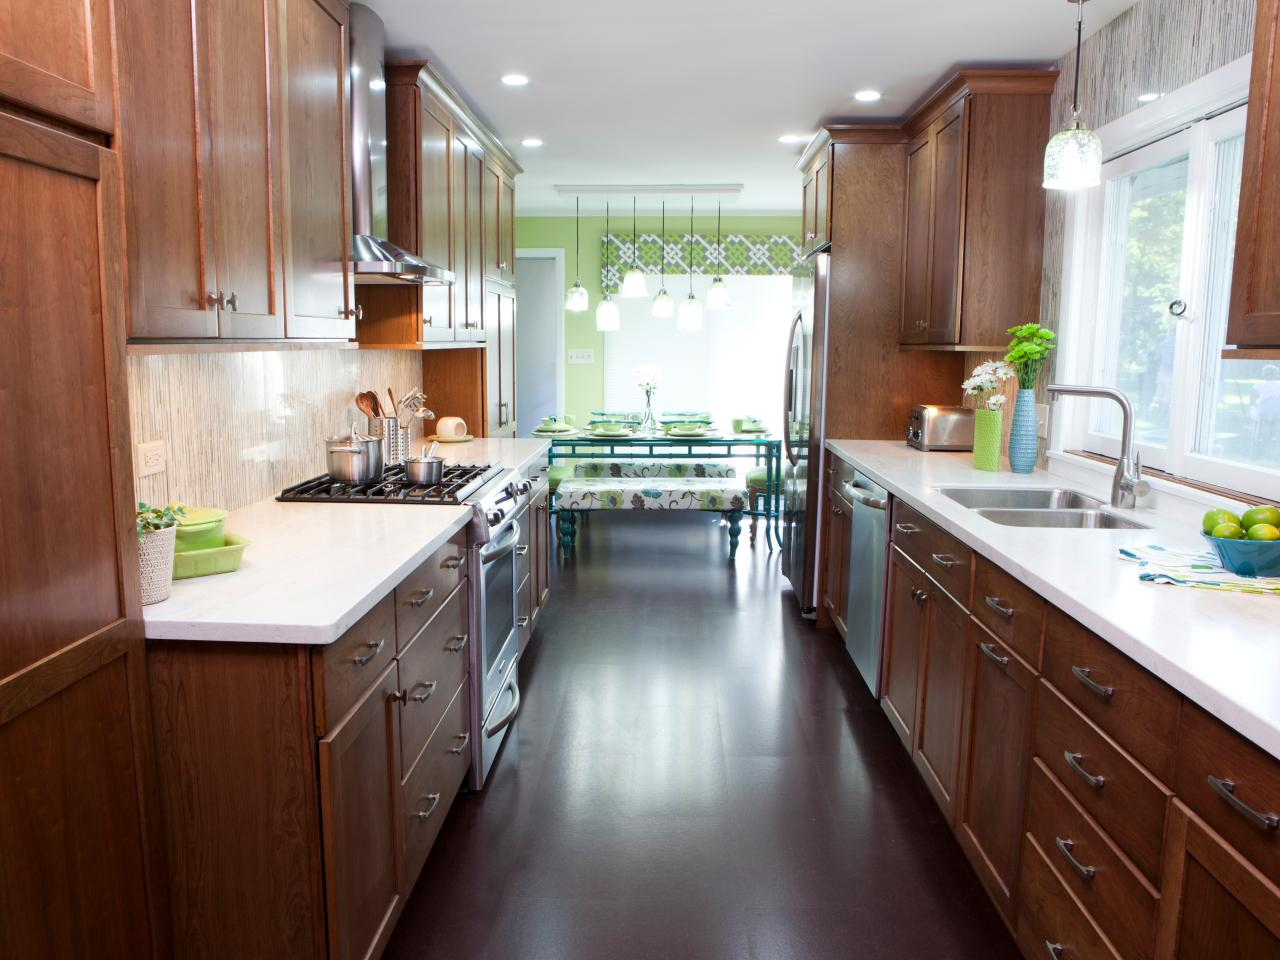 galley kitchen designs WXPFSLT